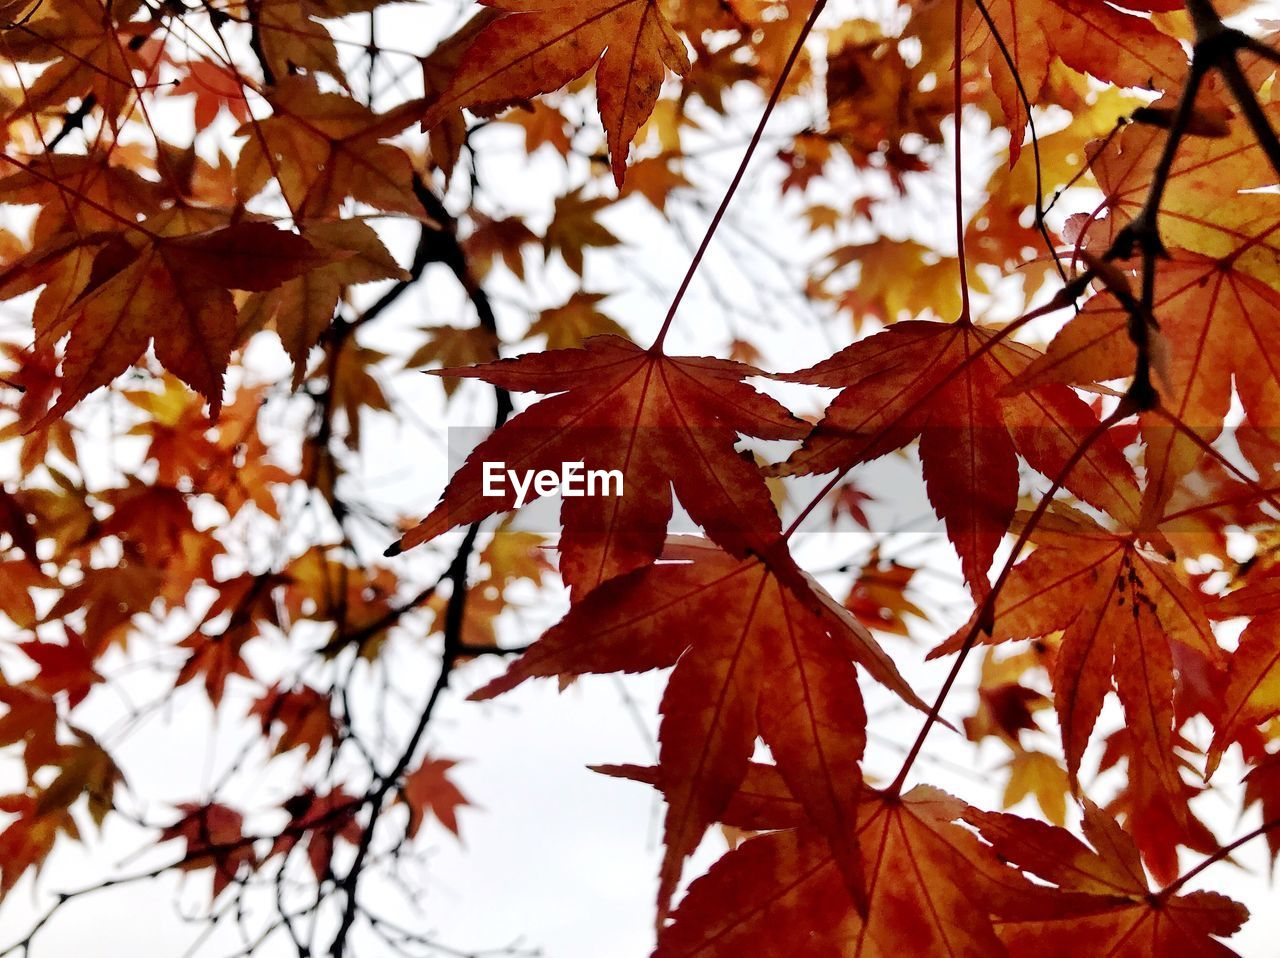 autumn, leaf, change, plant part, tree, plant, maple leaf, close-up, focus on foreground, leaves, no people, maple tree, nature, beauty in nature, orange color, branch, day, growth, low angle view, outdoors, natural condition, fall, autumn collection